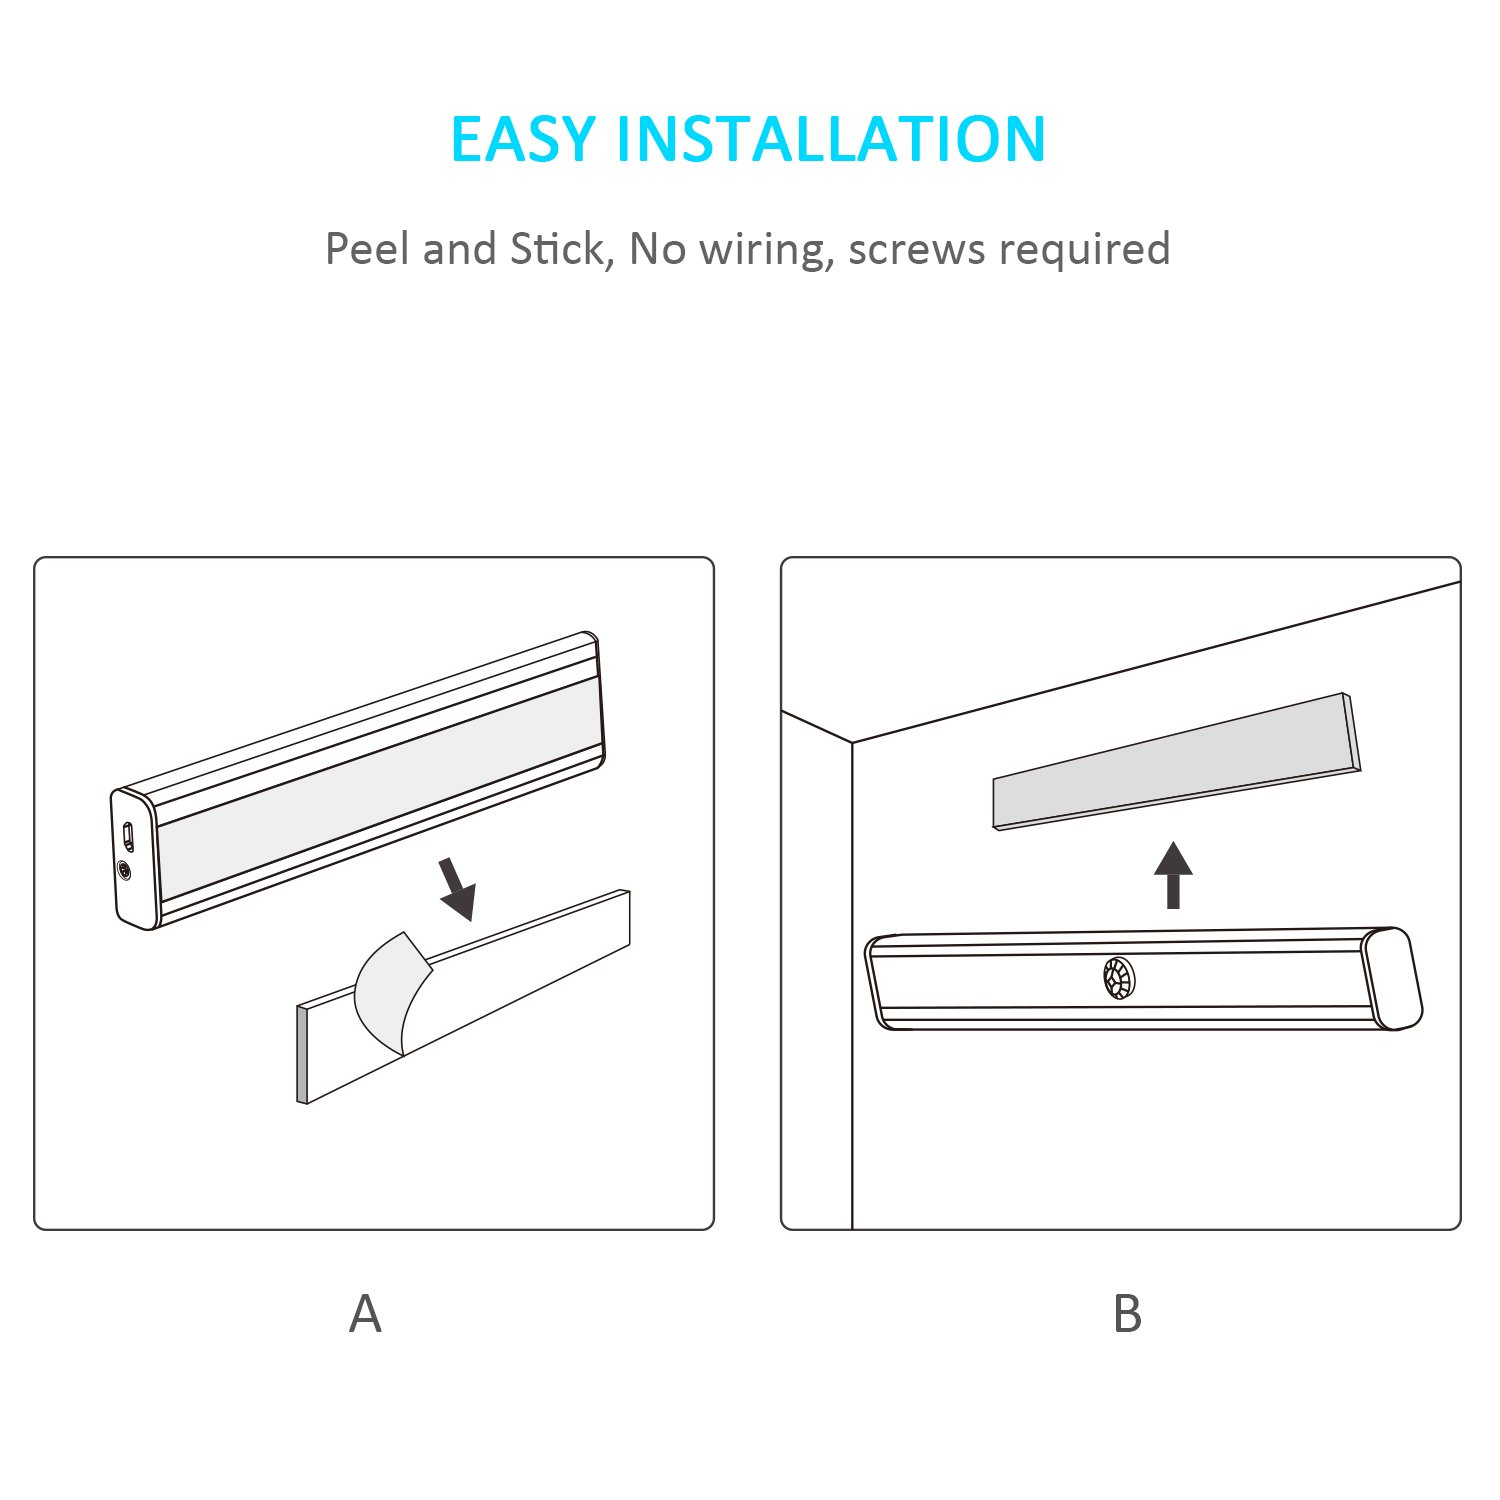 Wireless Led Closet Lights Megulla 14led Rechargeable Battery Wiring New Light Operated Stick On Anywhere Portable Night For Under Cabinet Cupboards Stairs